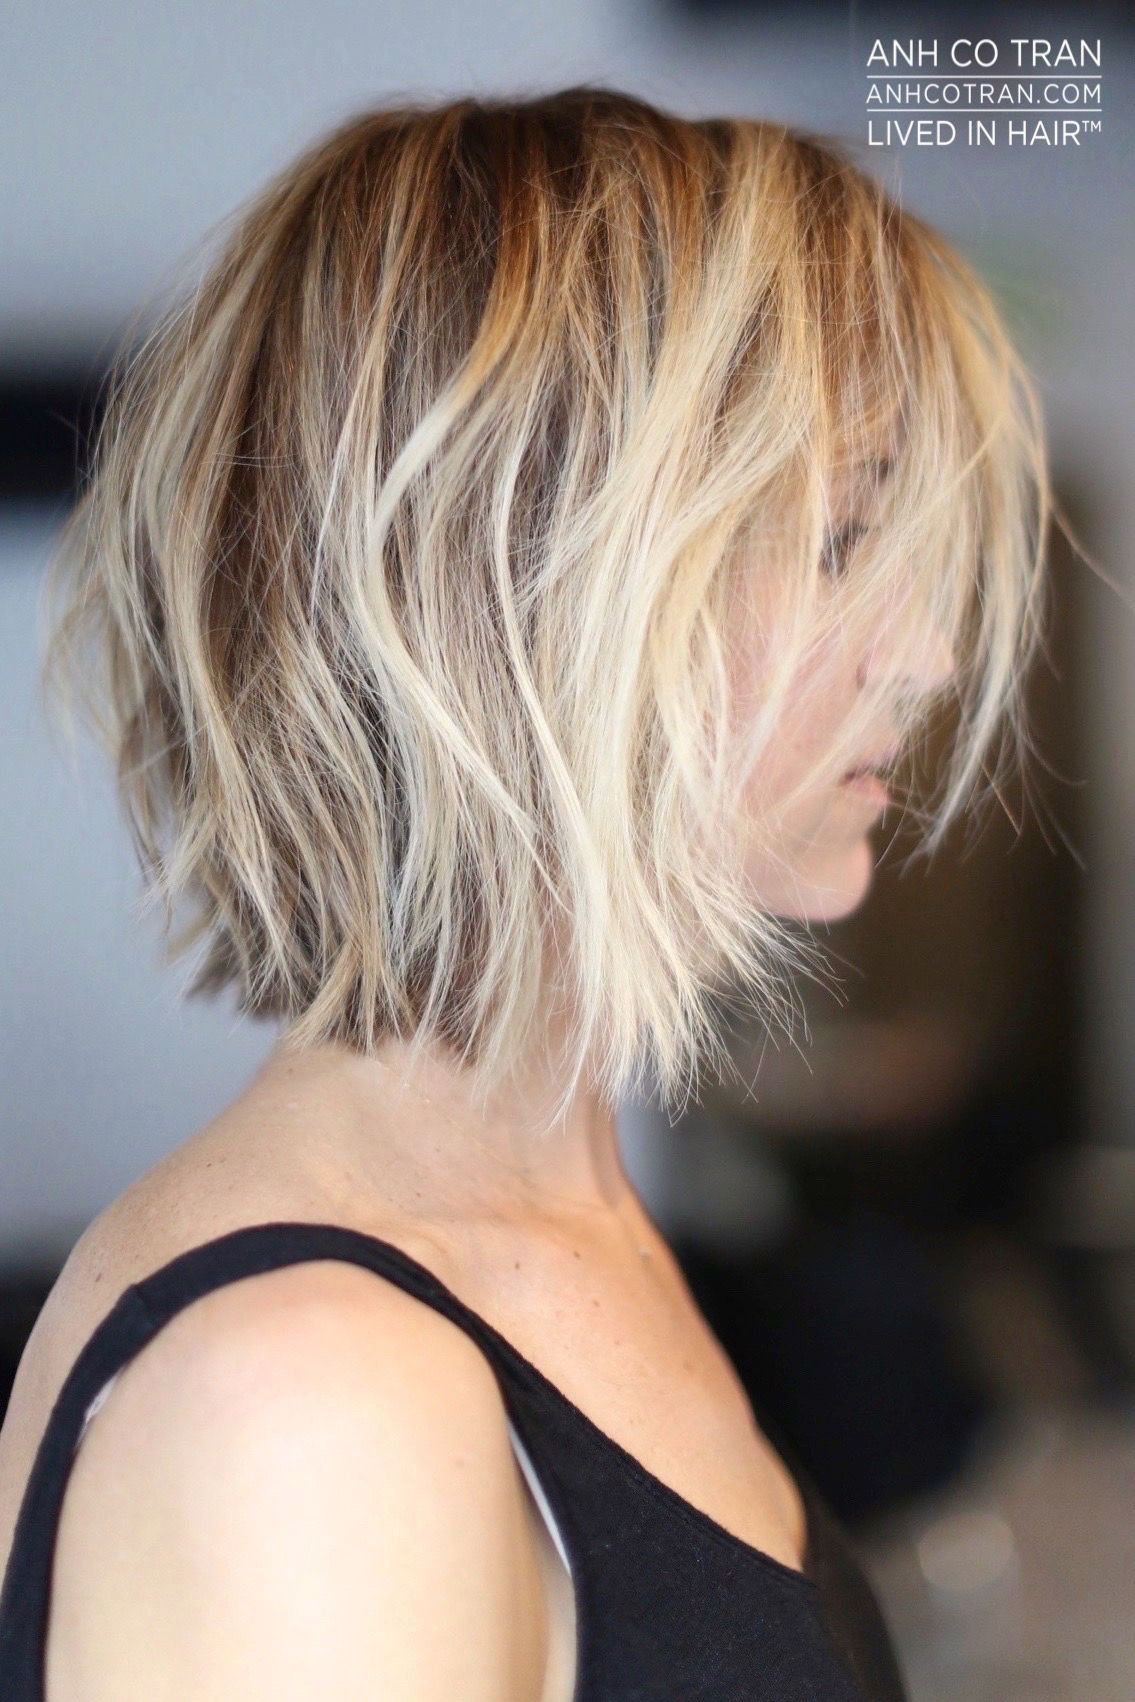 Pin by jenni marie on my style pinterest hair style haircuts